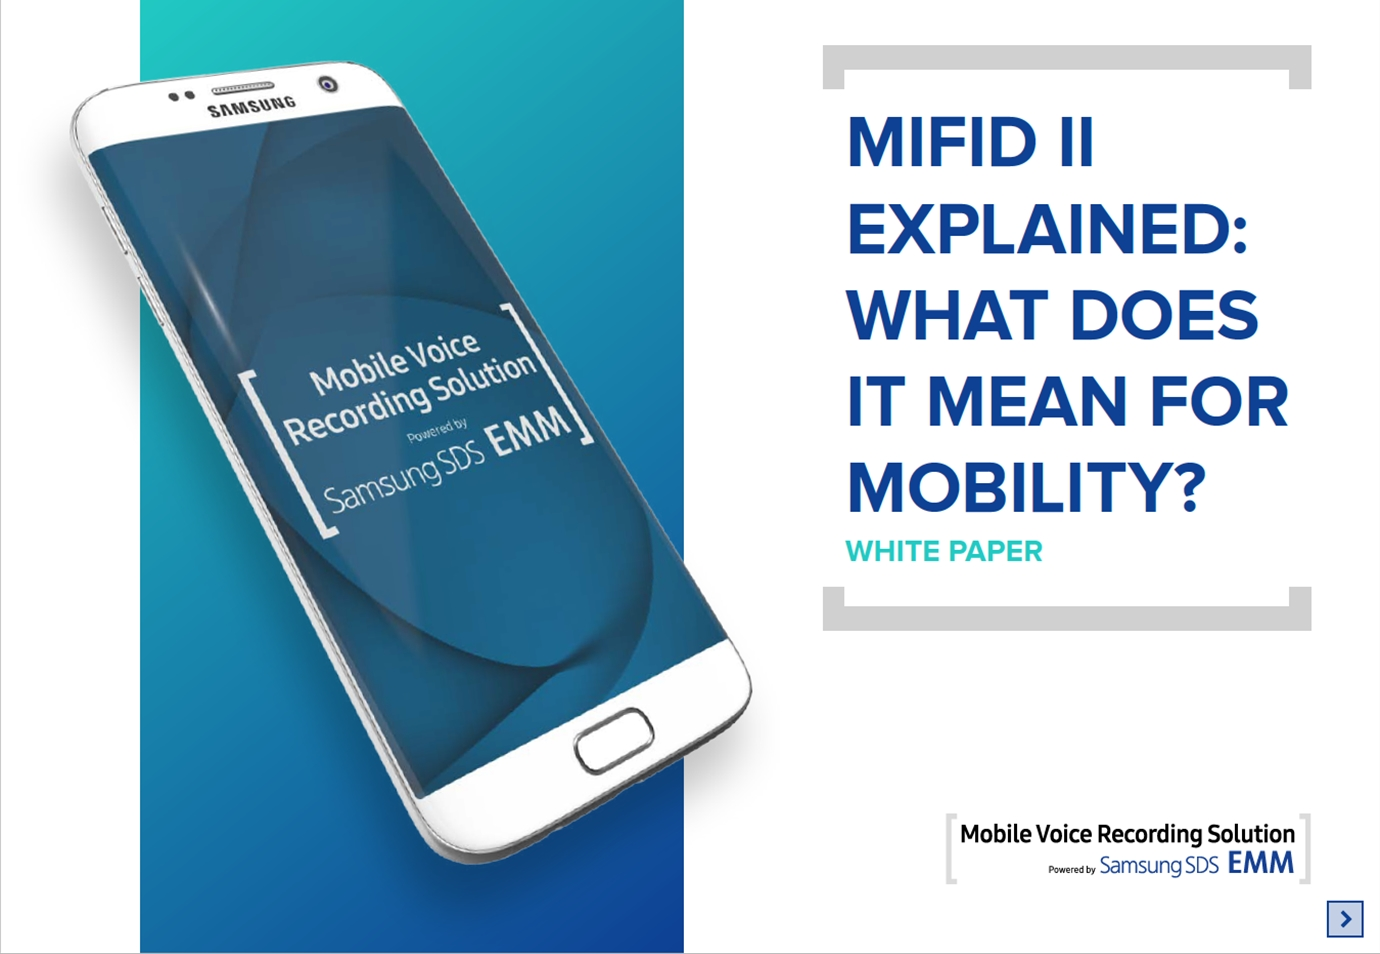 MIFID II EXPLAINED: WHAT DOES IT MEAN FOR MOBILITY?